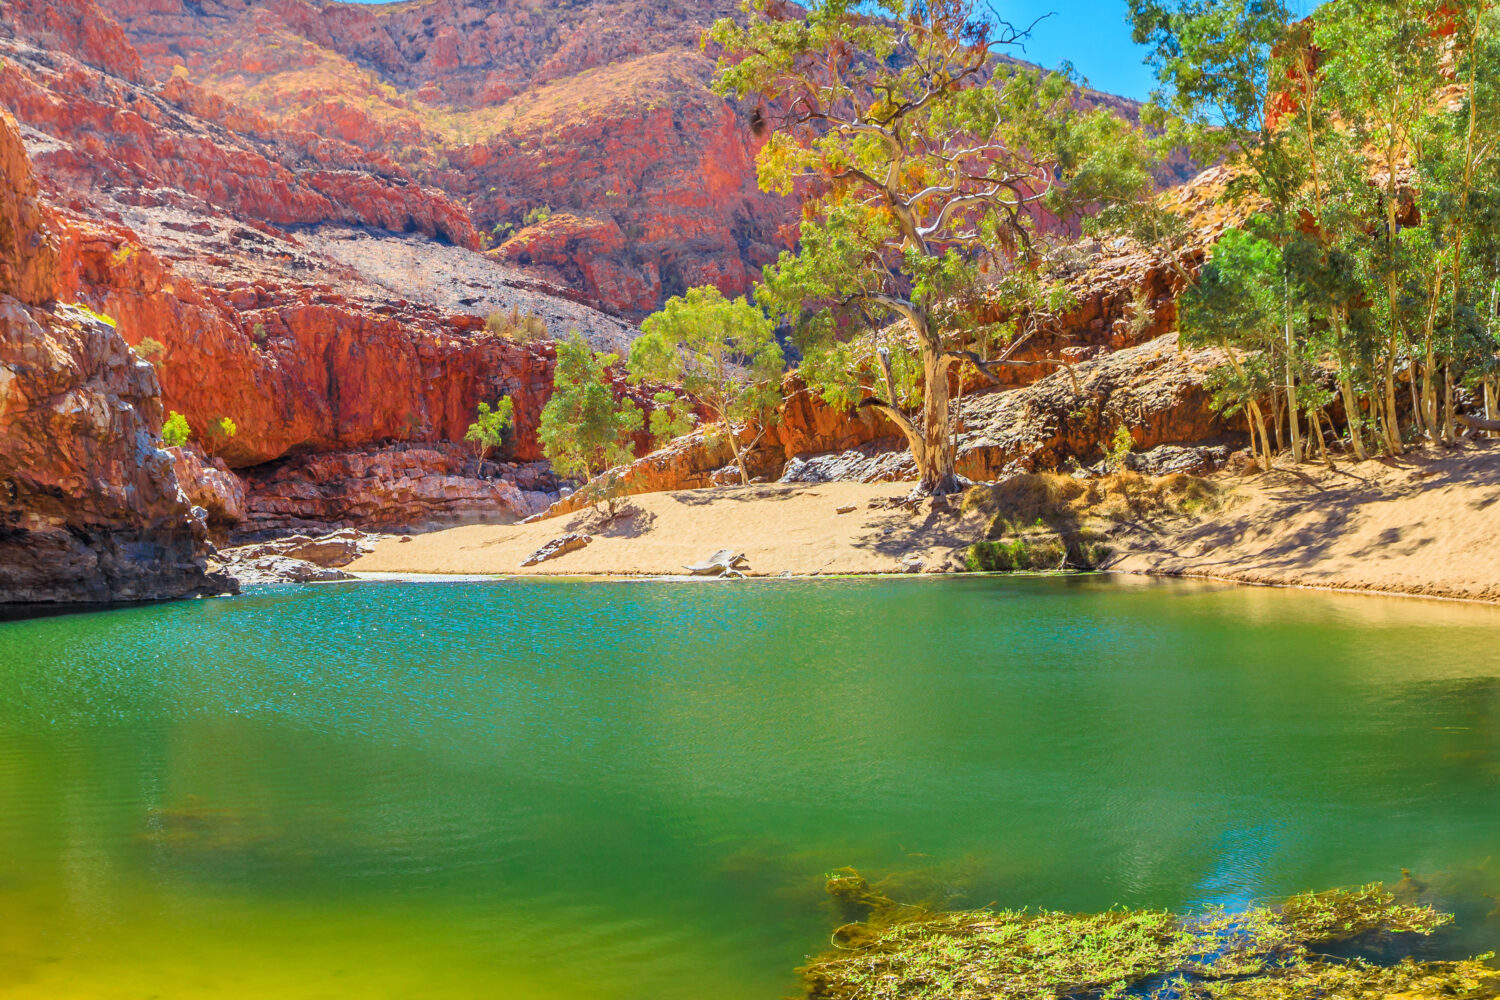 green water with red rock face behind